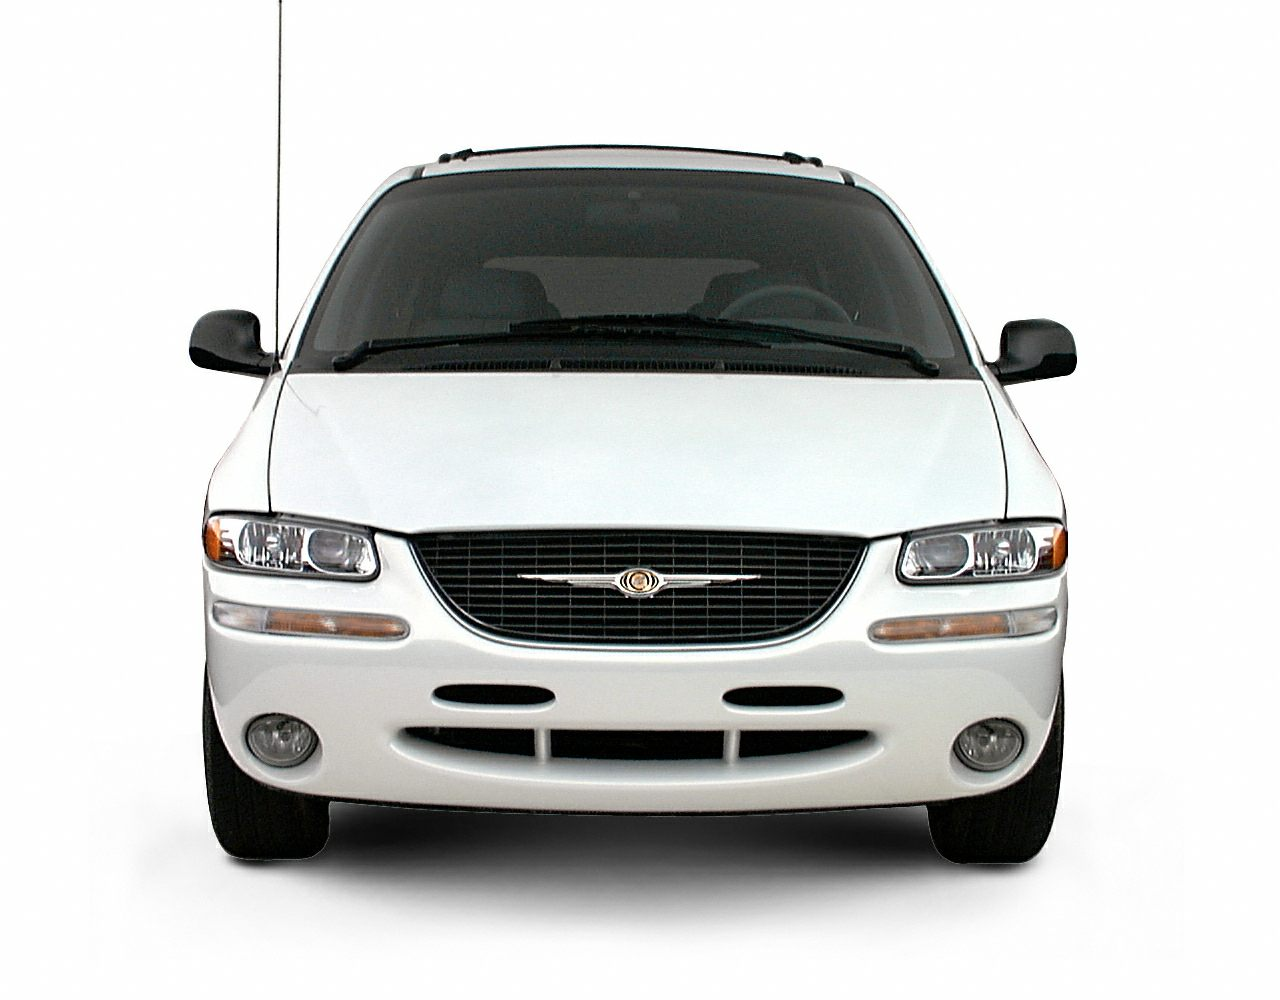 2000 chrysler town country lxi front wheel drive passenger van pictures. Black Bedroom Furniture Sets. Home Design Ideas